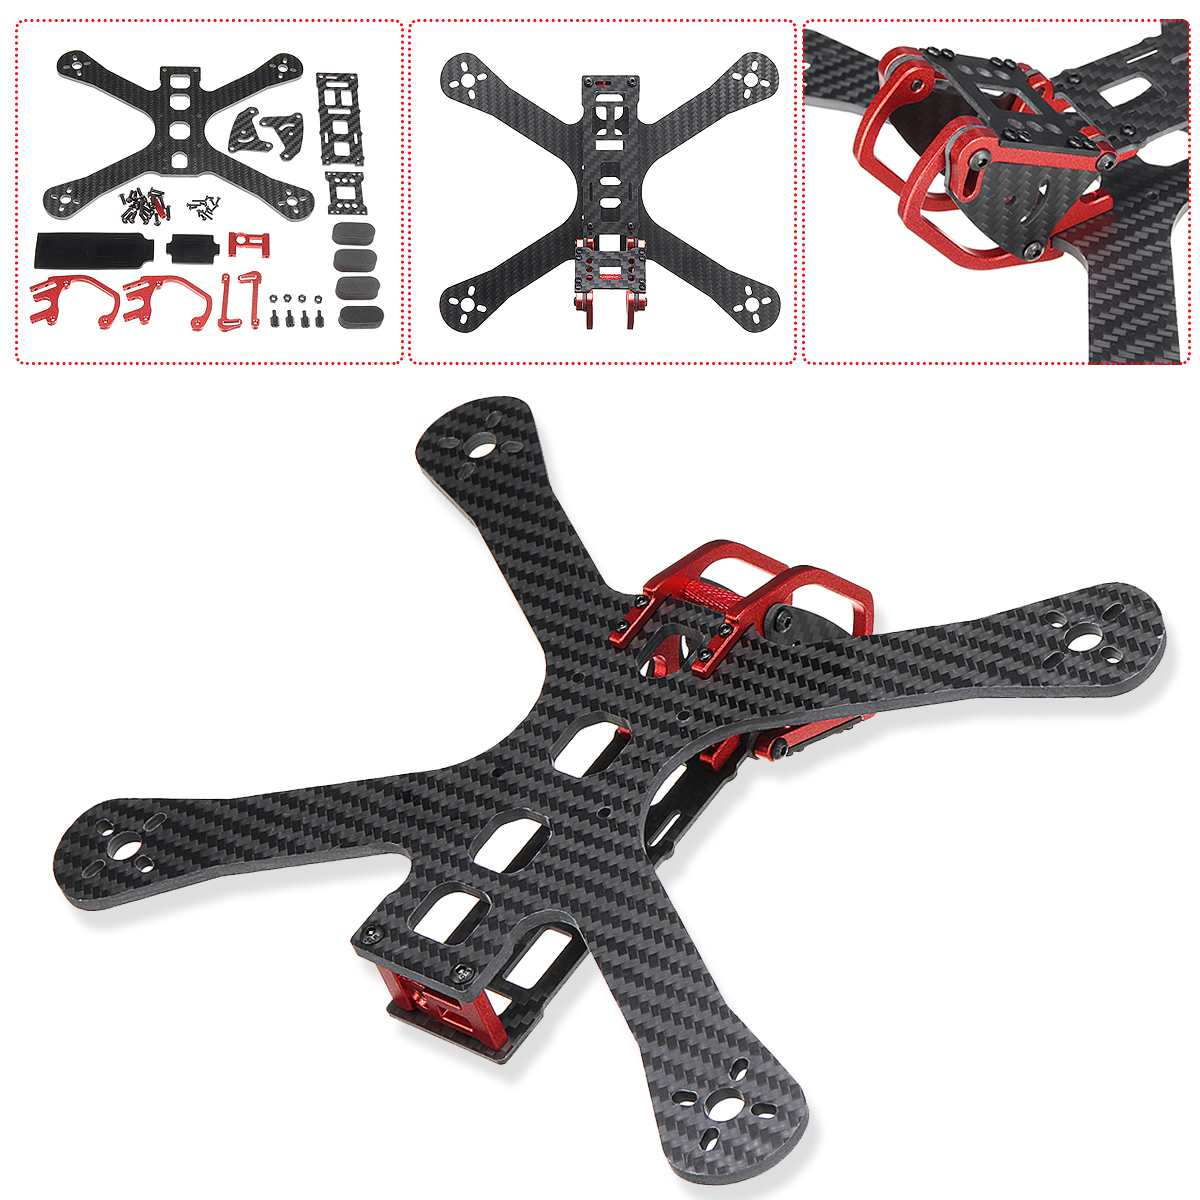 Chameleon 220mm 5 FPV Frame FPV Racing font b Drone b font Quadcopter frame FPV for